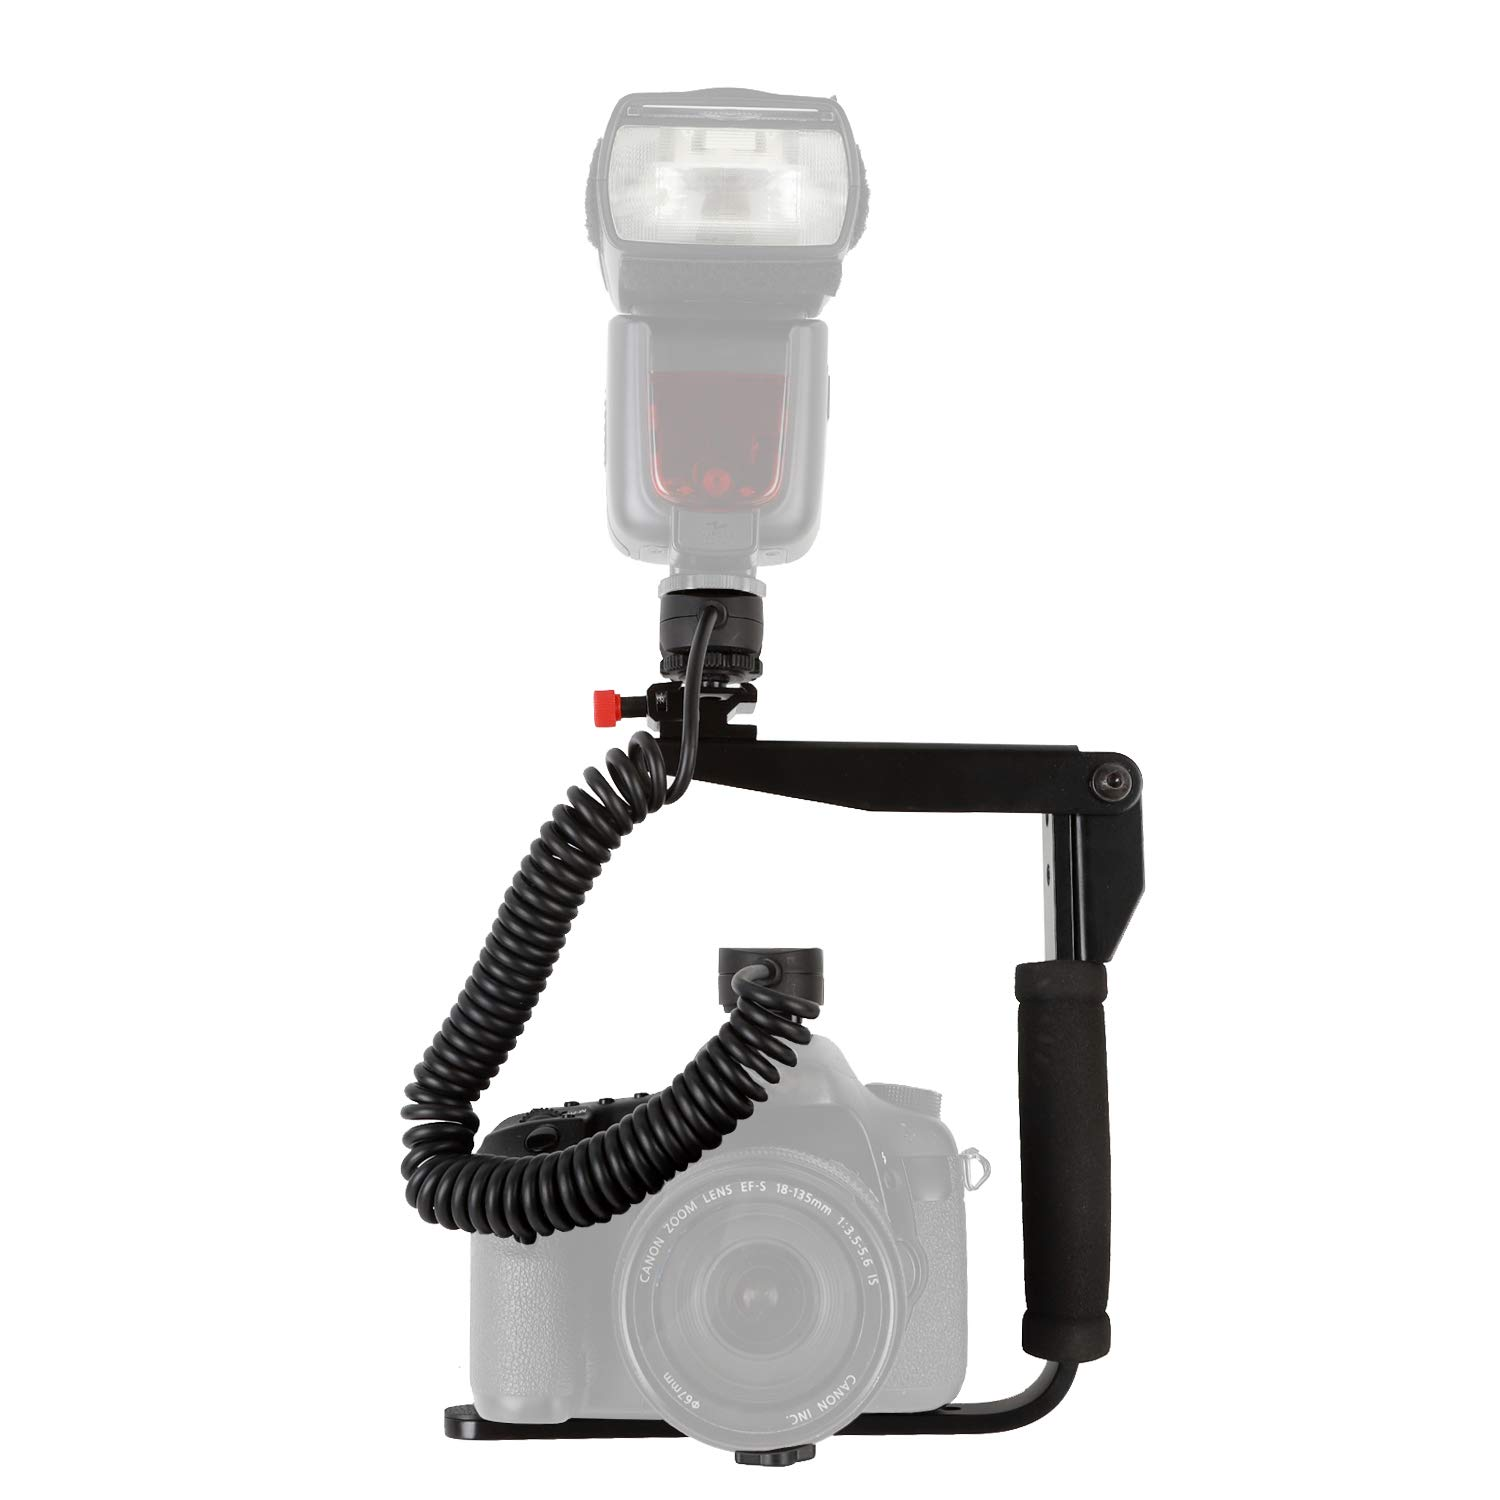 Easy Hood Rotating Flash Bracket Mount and 6.6ft TTL Off Camera Flash Speedlite Cord for Sony A9 A7 A7R A7S A7 III A7R II A7R III A7SII A7RMII A6500 A6400 Cameras with Multi Interface MI Shoe by Easy Hood